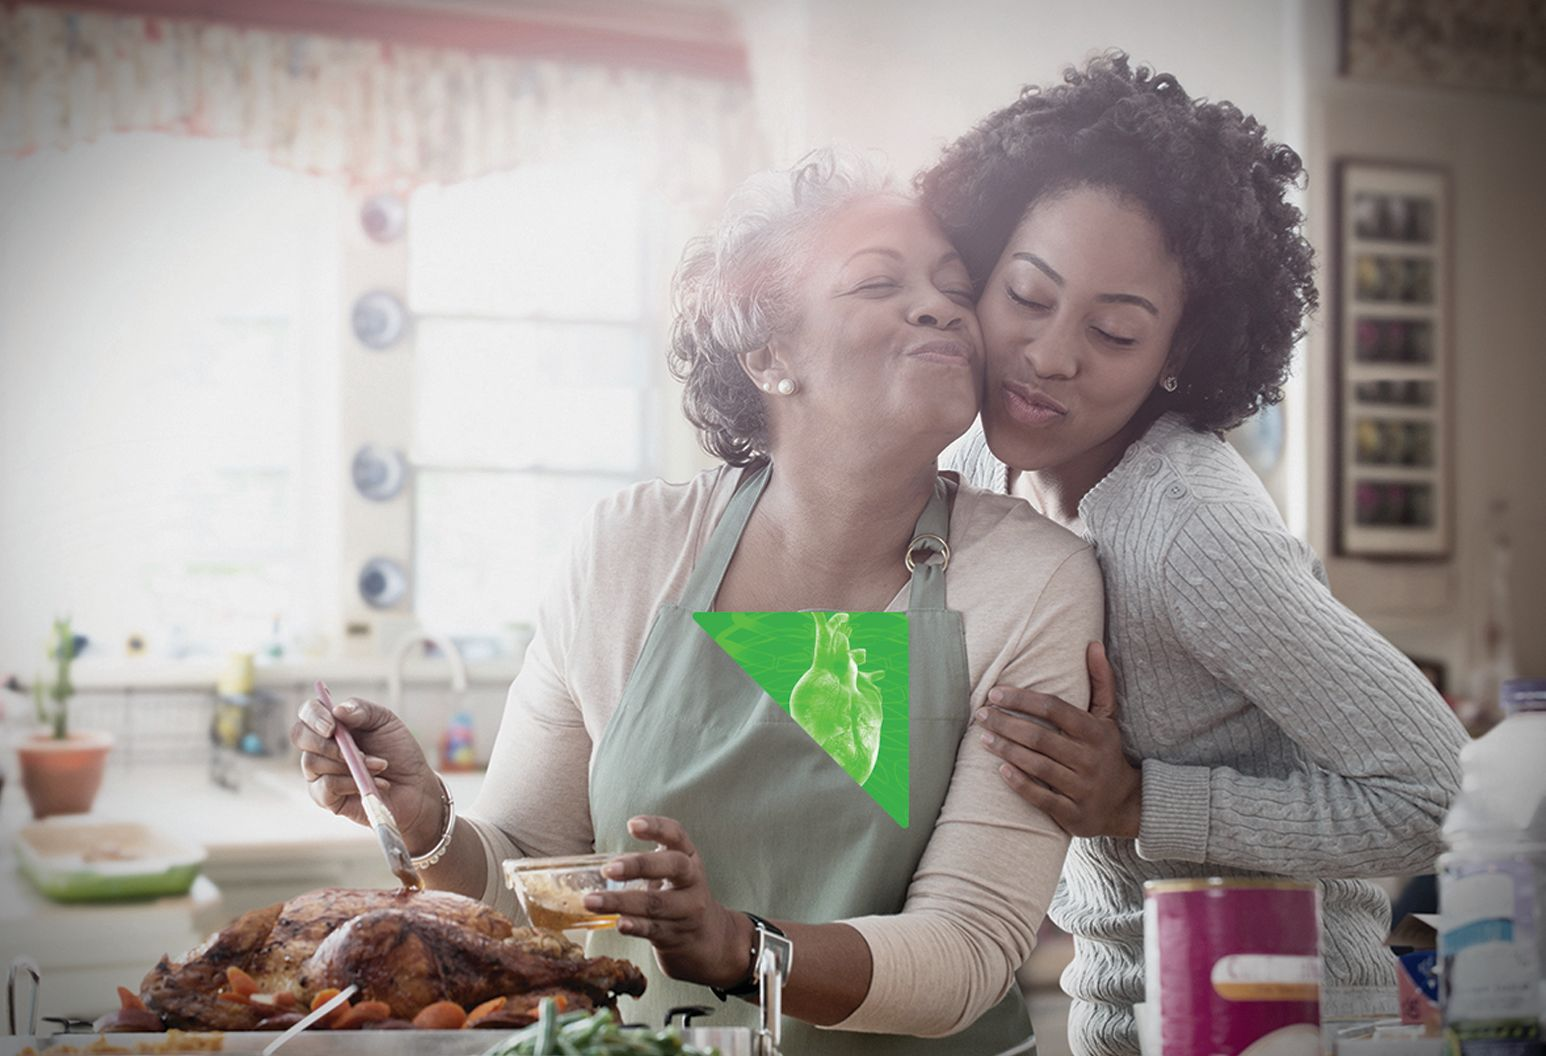 An elderly mother and middle aged daughter embrace in a kitchen while the mother cooks a turkey. There is a green constellation with the graphic of a heart organ over the mother's heart.